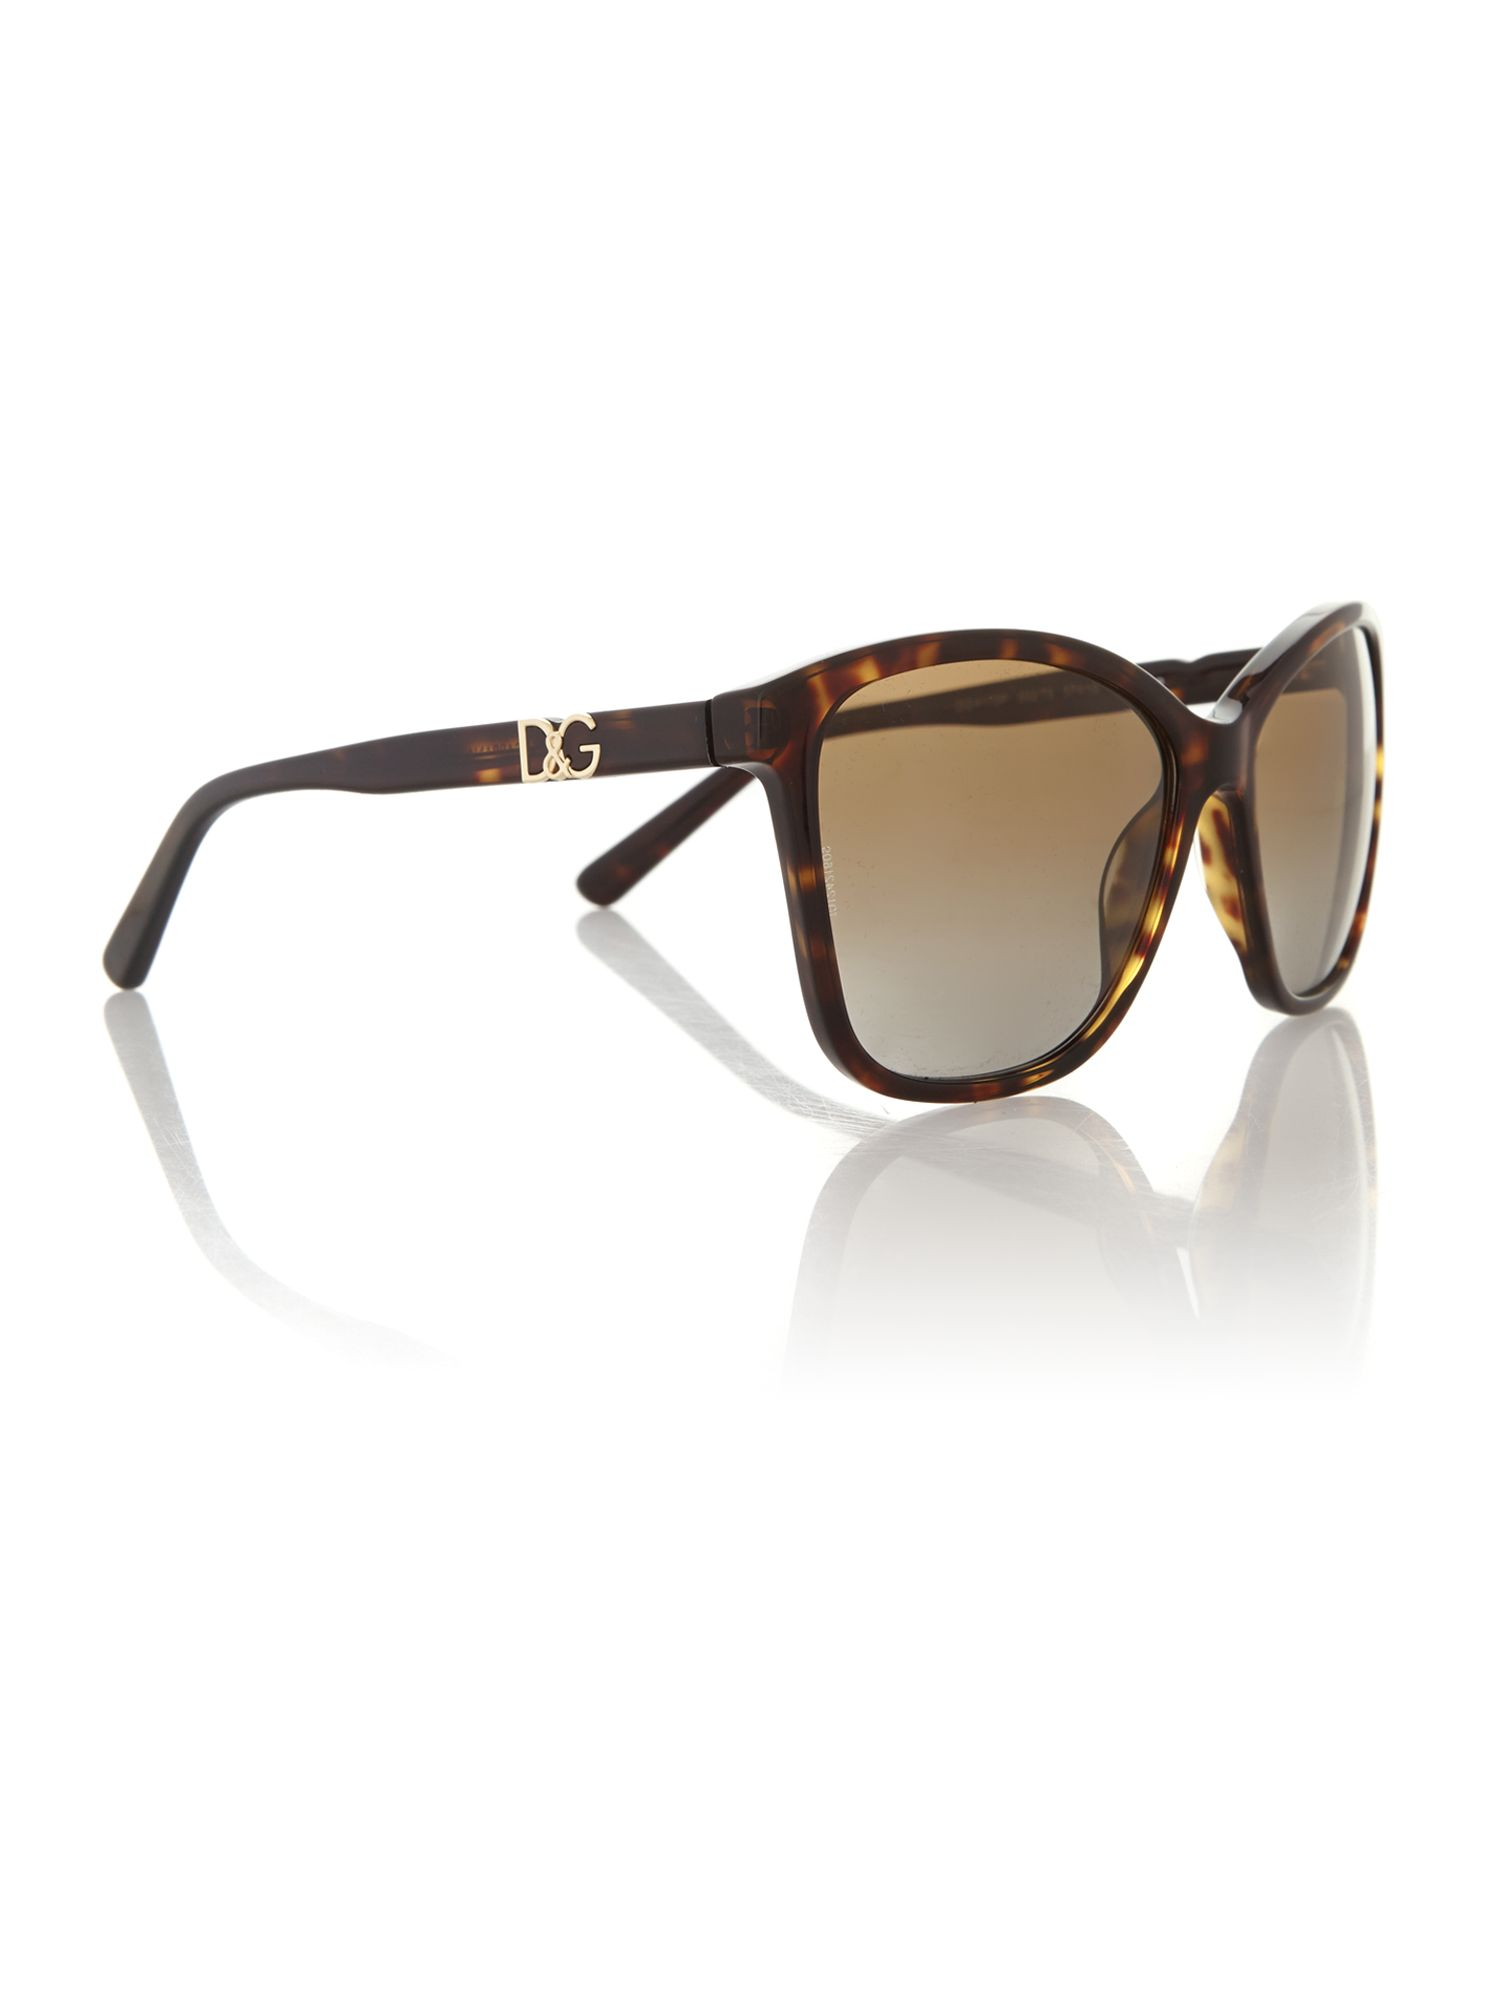 Ladies DG4170 sunglasses